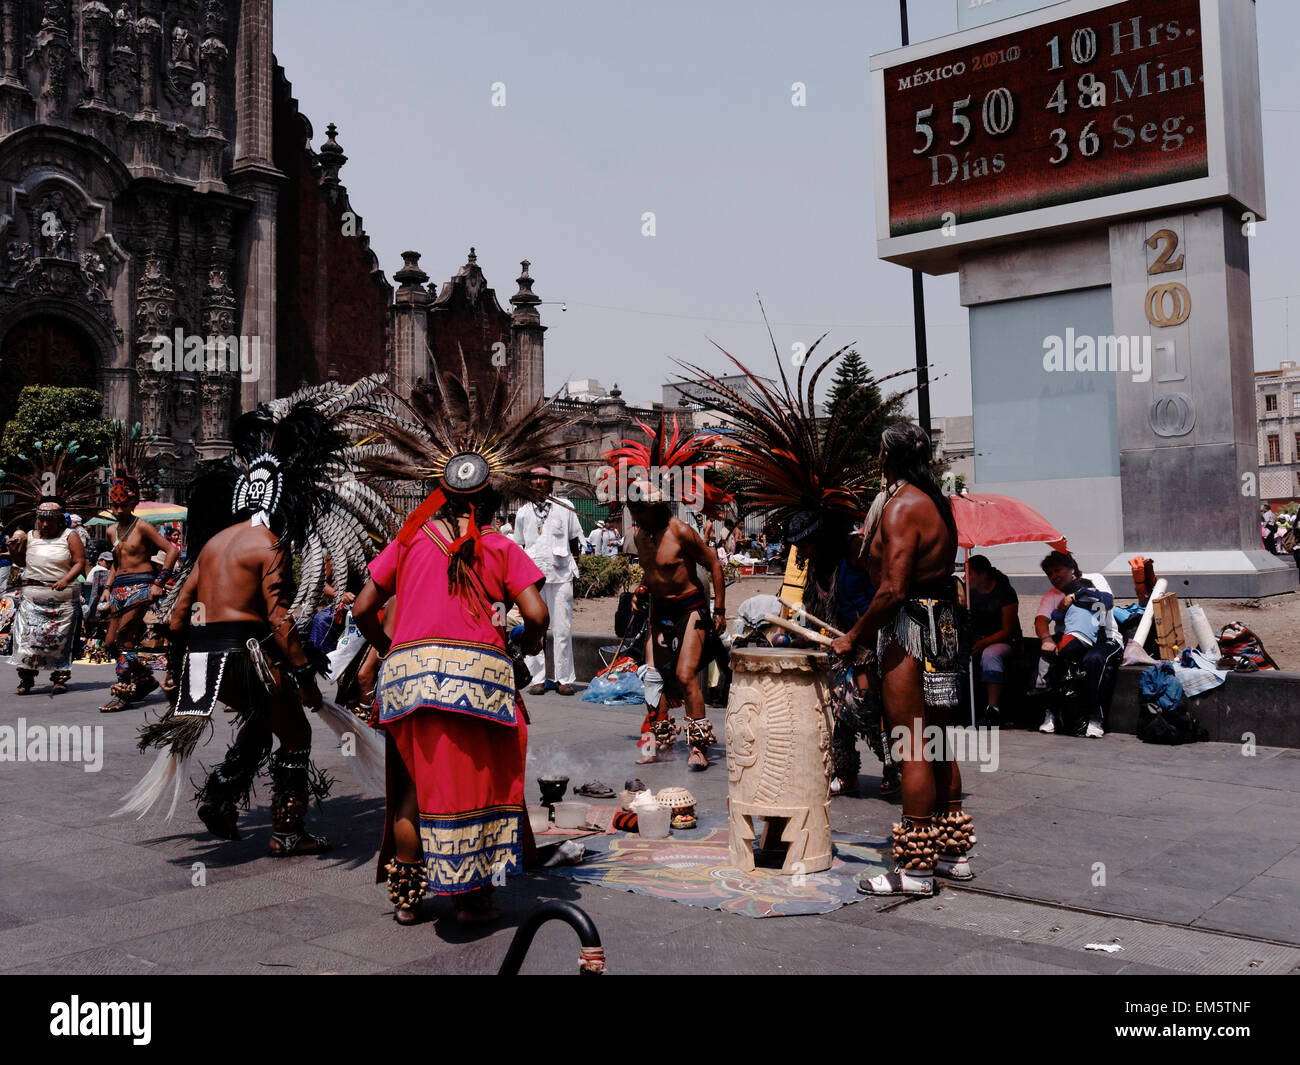 native Aztec dancers dancing performing in feathered headdress in the Zocalo, Mexico City, Mexico, North America - Stock Image